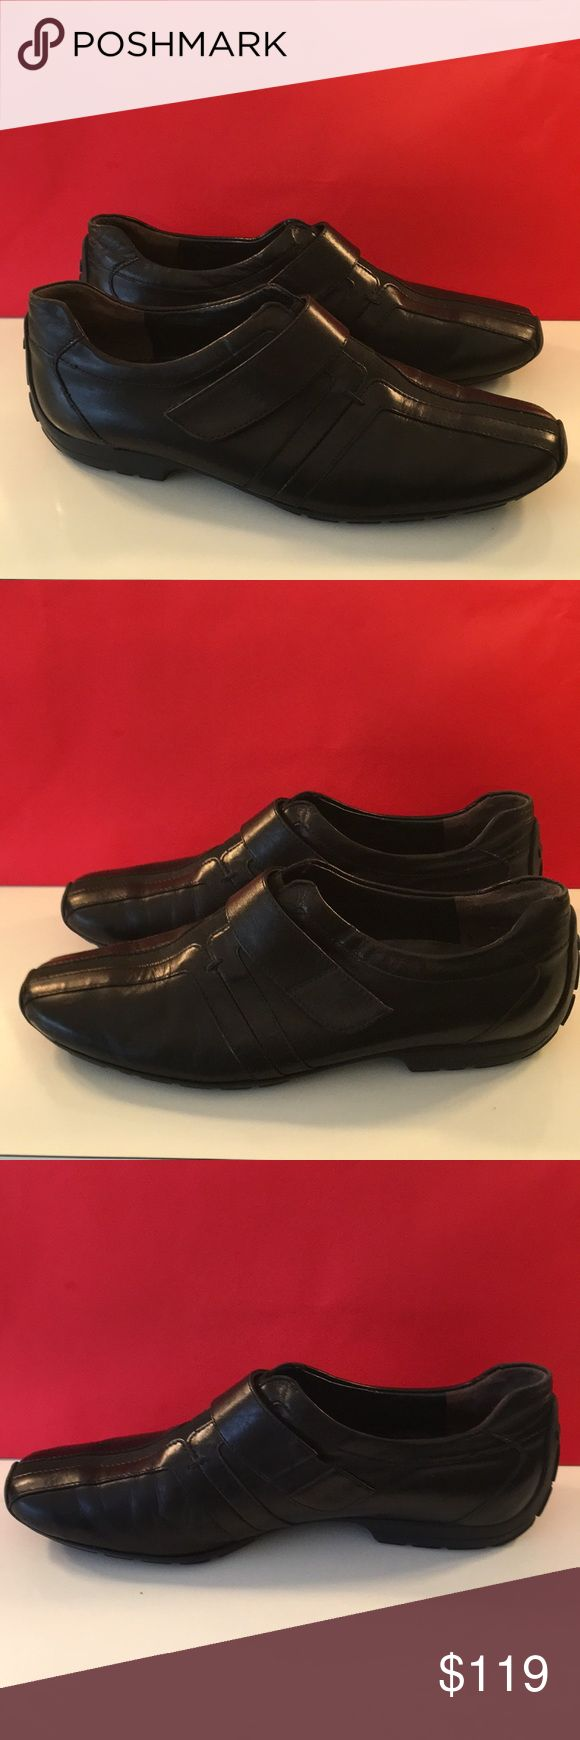 ❤️PAUL GREEN SNEAKER/LOAFERS 💯AUTHENTIC ❤️PAUL GREEN SNEAKER/LOAFERS 💯AUTHENTIC ! SO PRETTY WND STYLISH ALWAYS ON TREND! GREAT SHOES! THEY ARE BLACK AND ARE A SIZE 6 . GREAT HIGH END EUROPEAN STYLE! Paul Green Shoes Sneakers